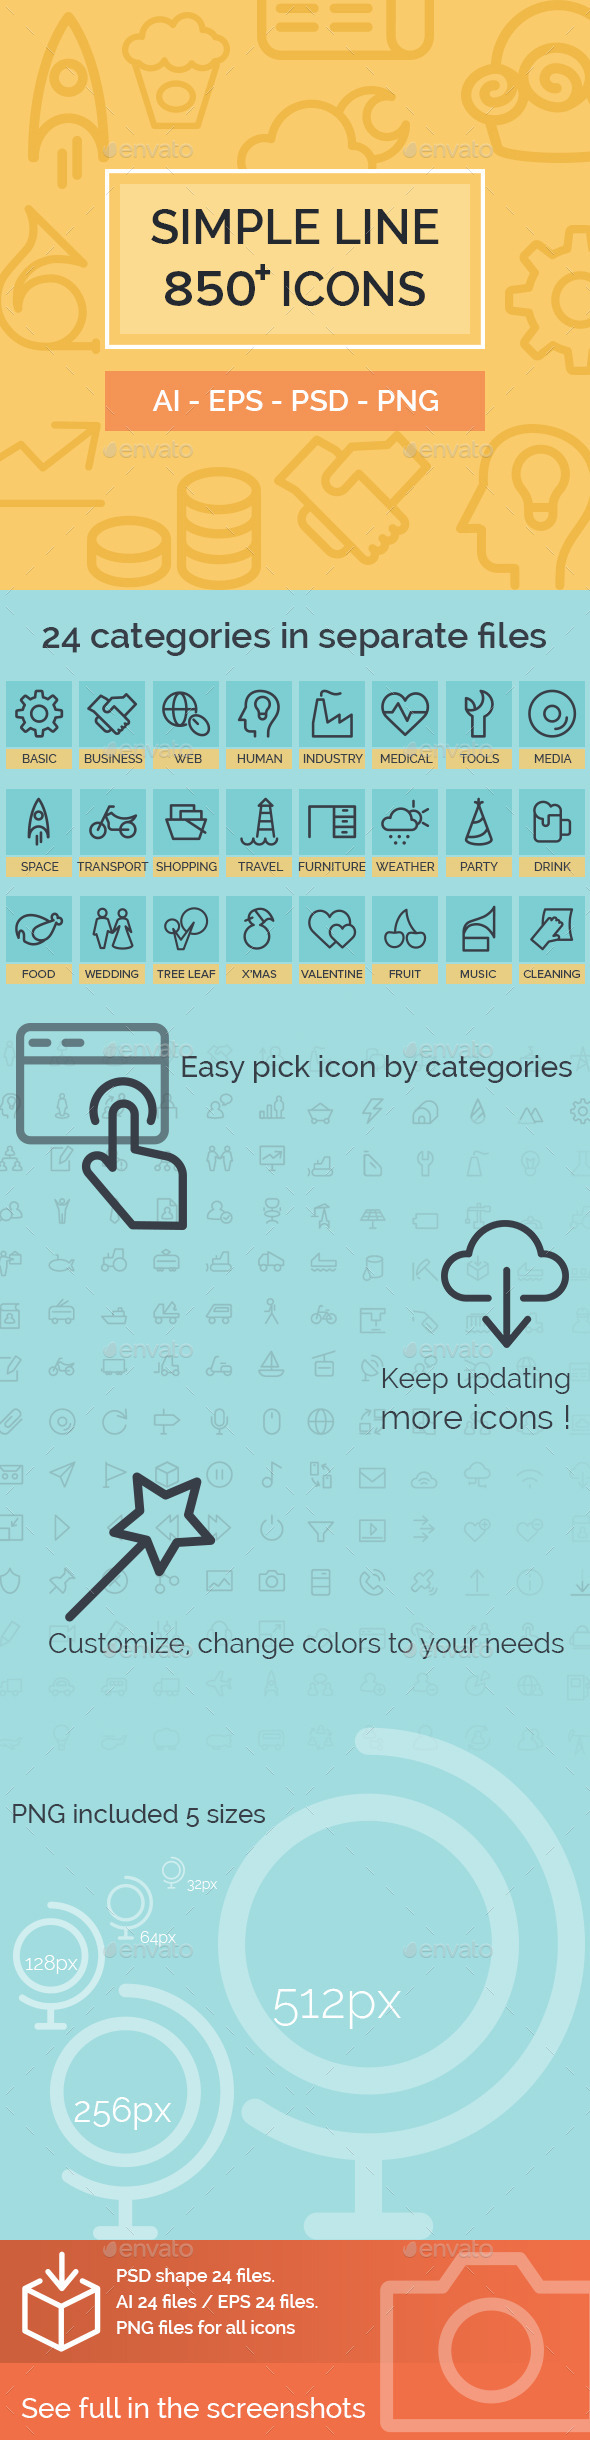 GraphicRiver 850 Simple Line Icons 10347599